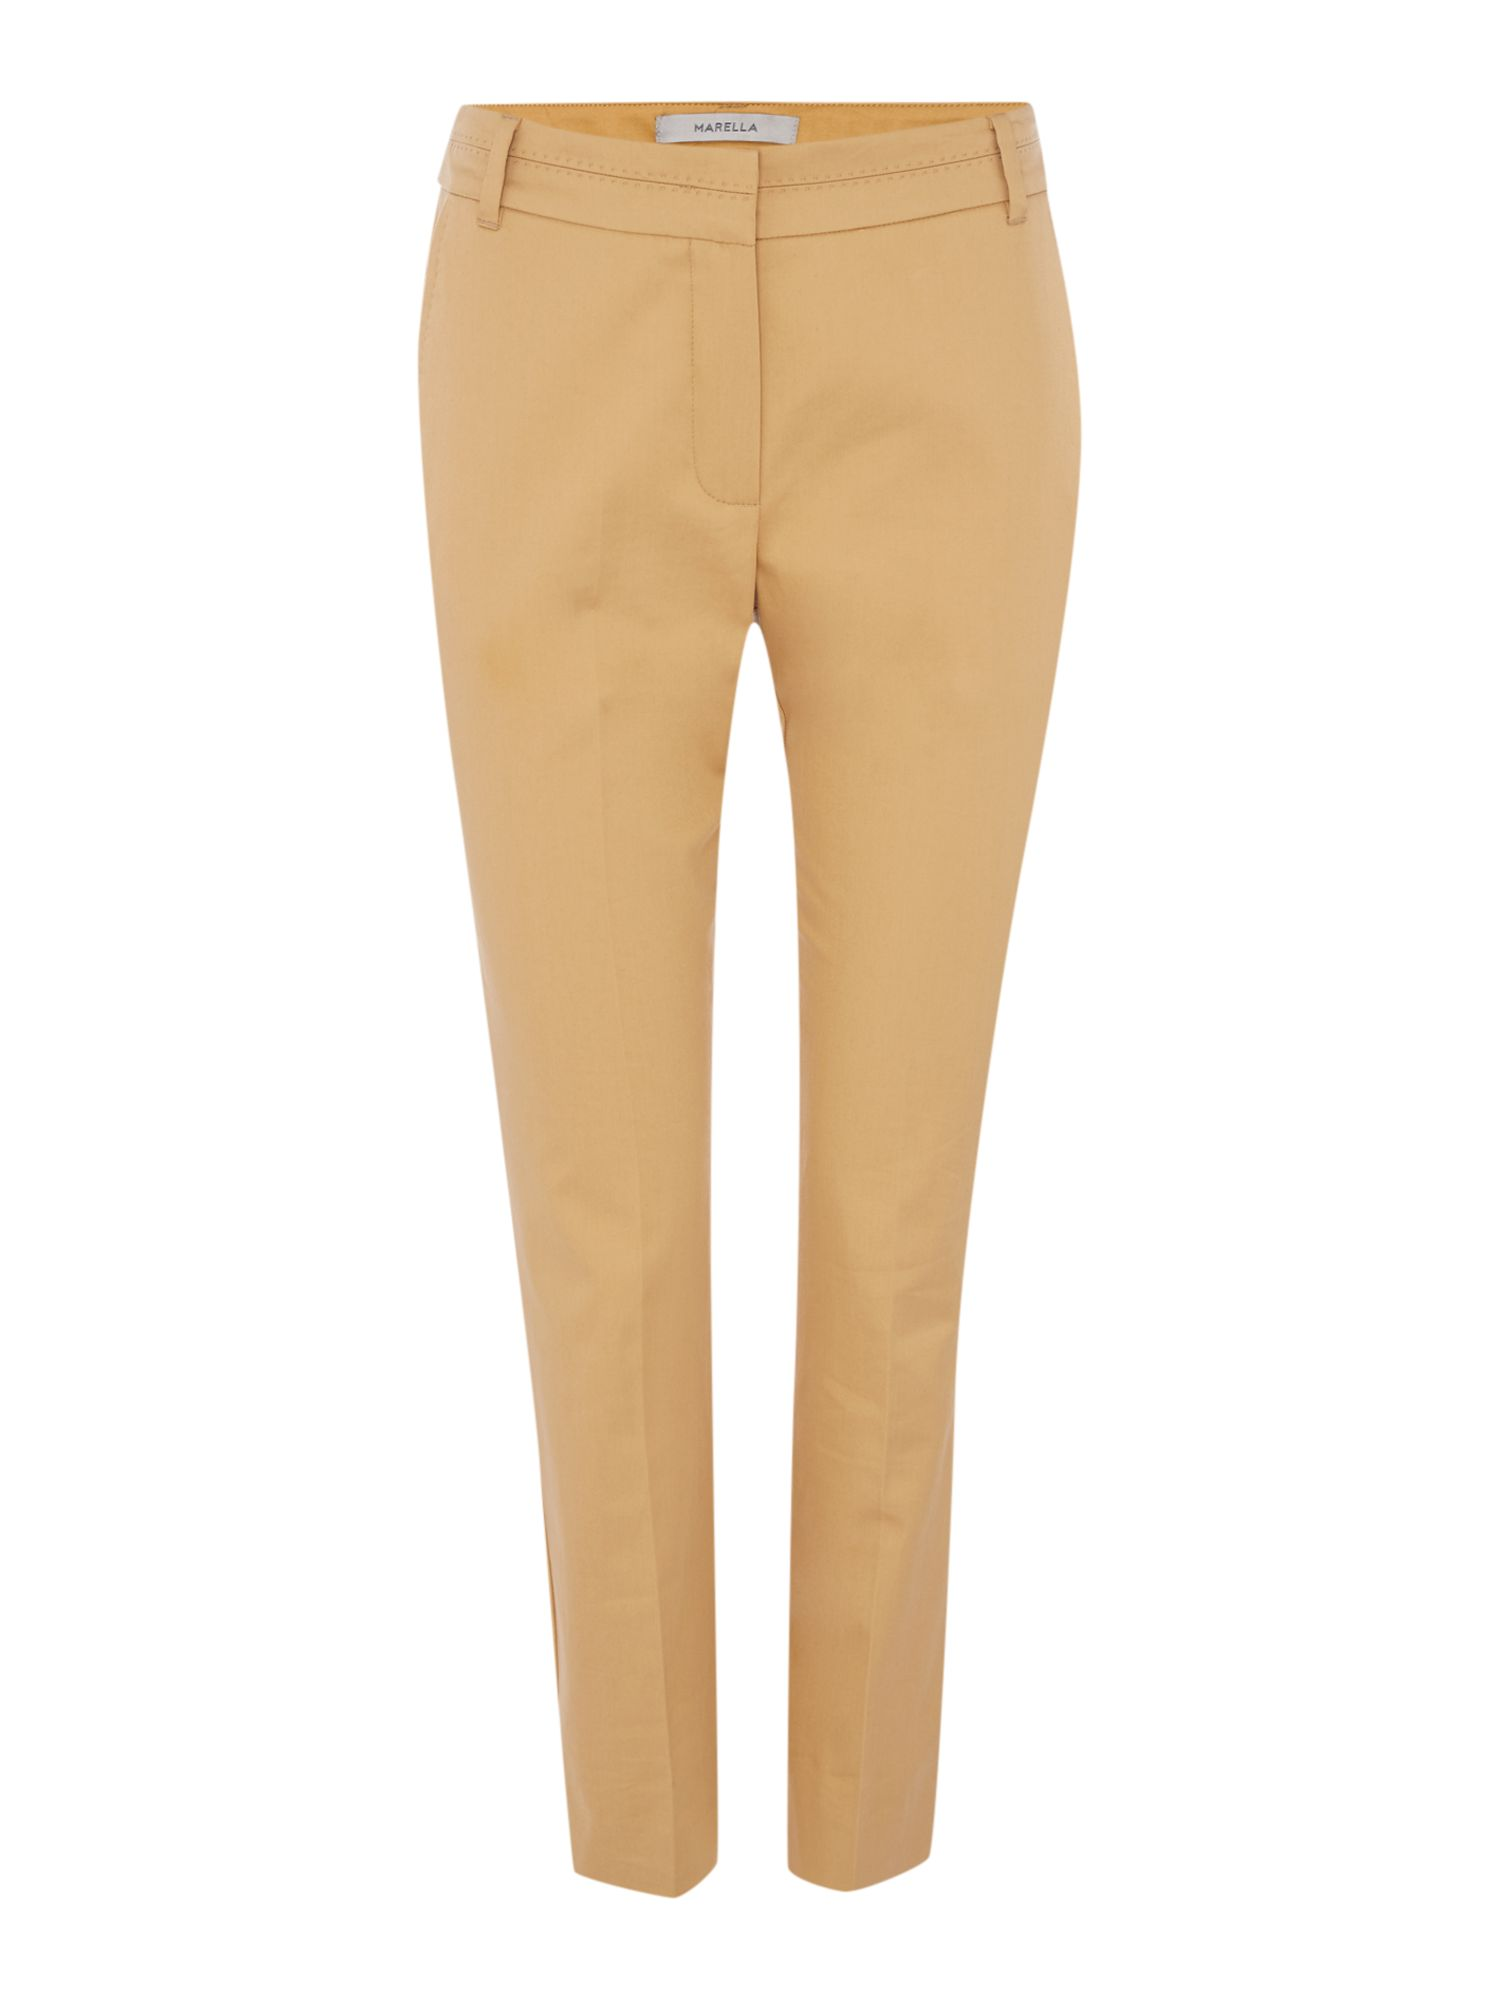 Marella PIRANO lightweight slim leg trouser, Tobacco